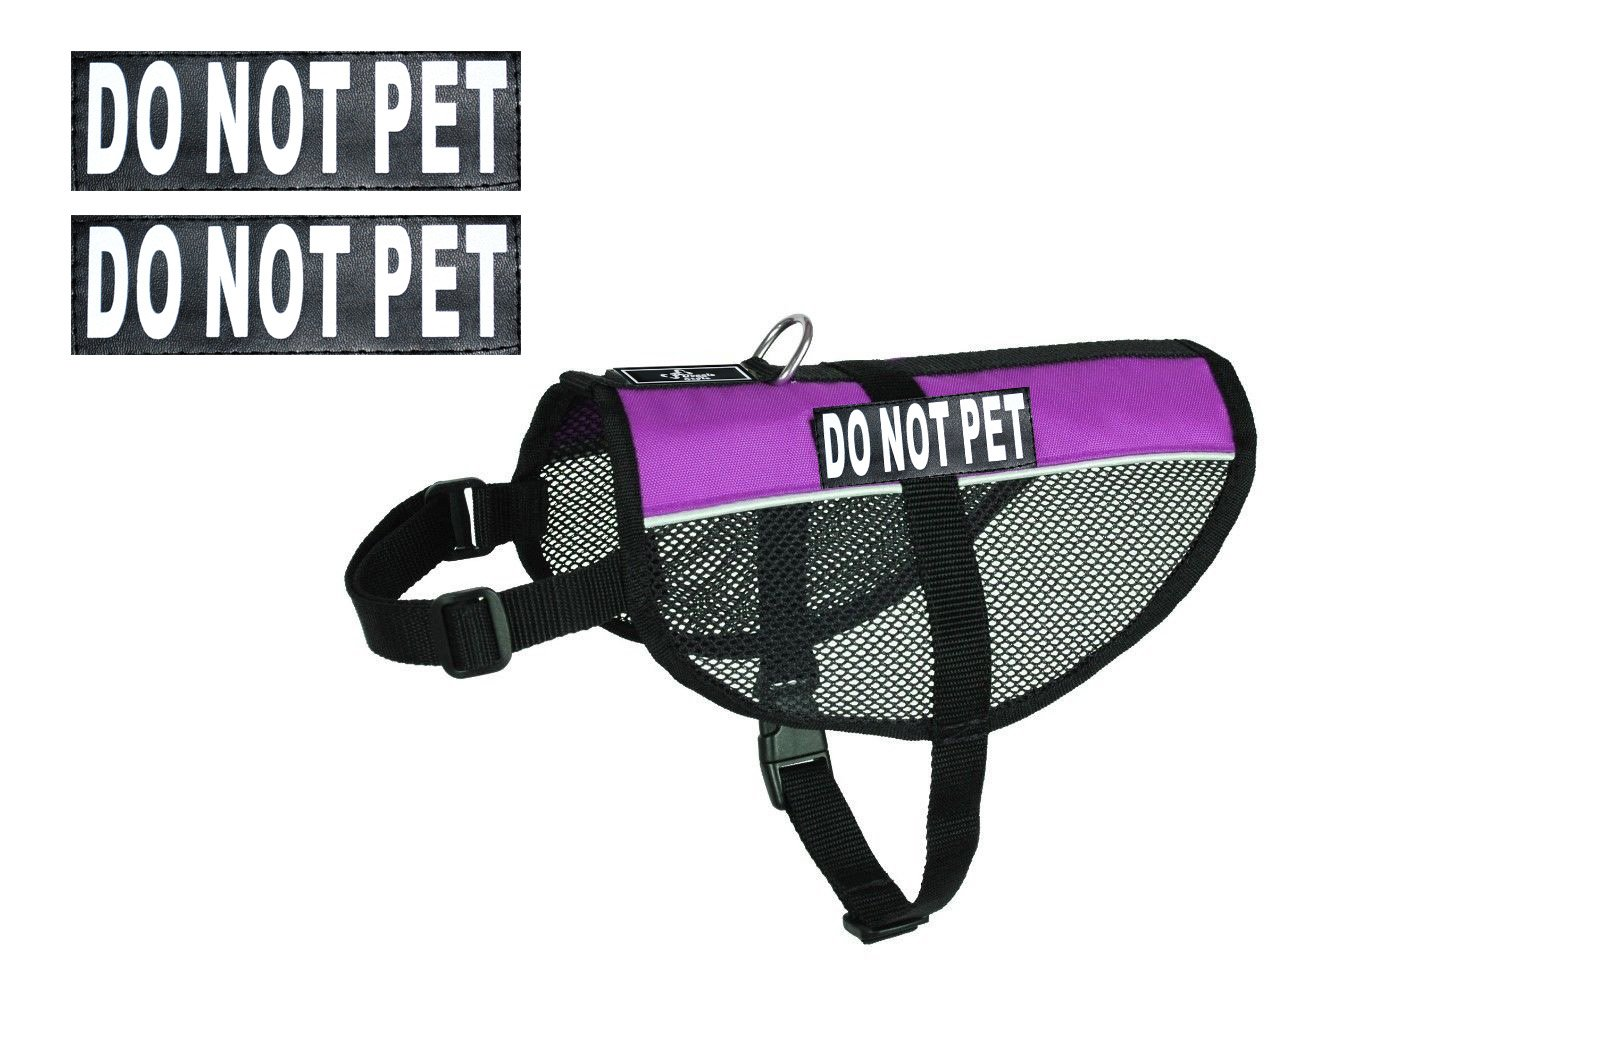 DO NOT PET Service Dog mesh Vest Harness Cool Comfort Nylon for Dogs Small Medium Large Purchase Comes with 2 Reflective DO NOT PET Removable Patches. Please Measure Your Dog Before Ordering